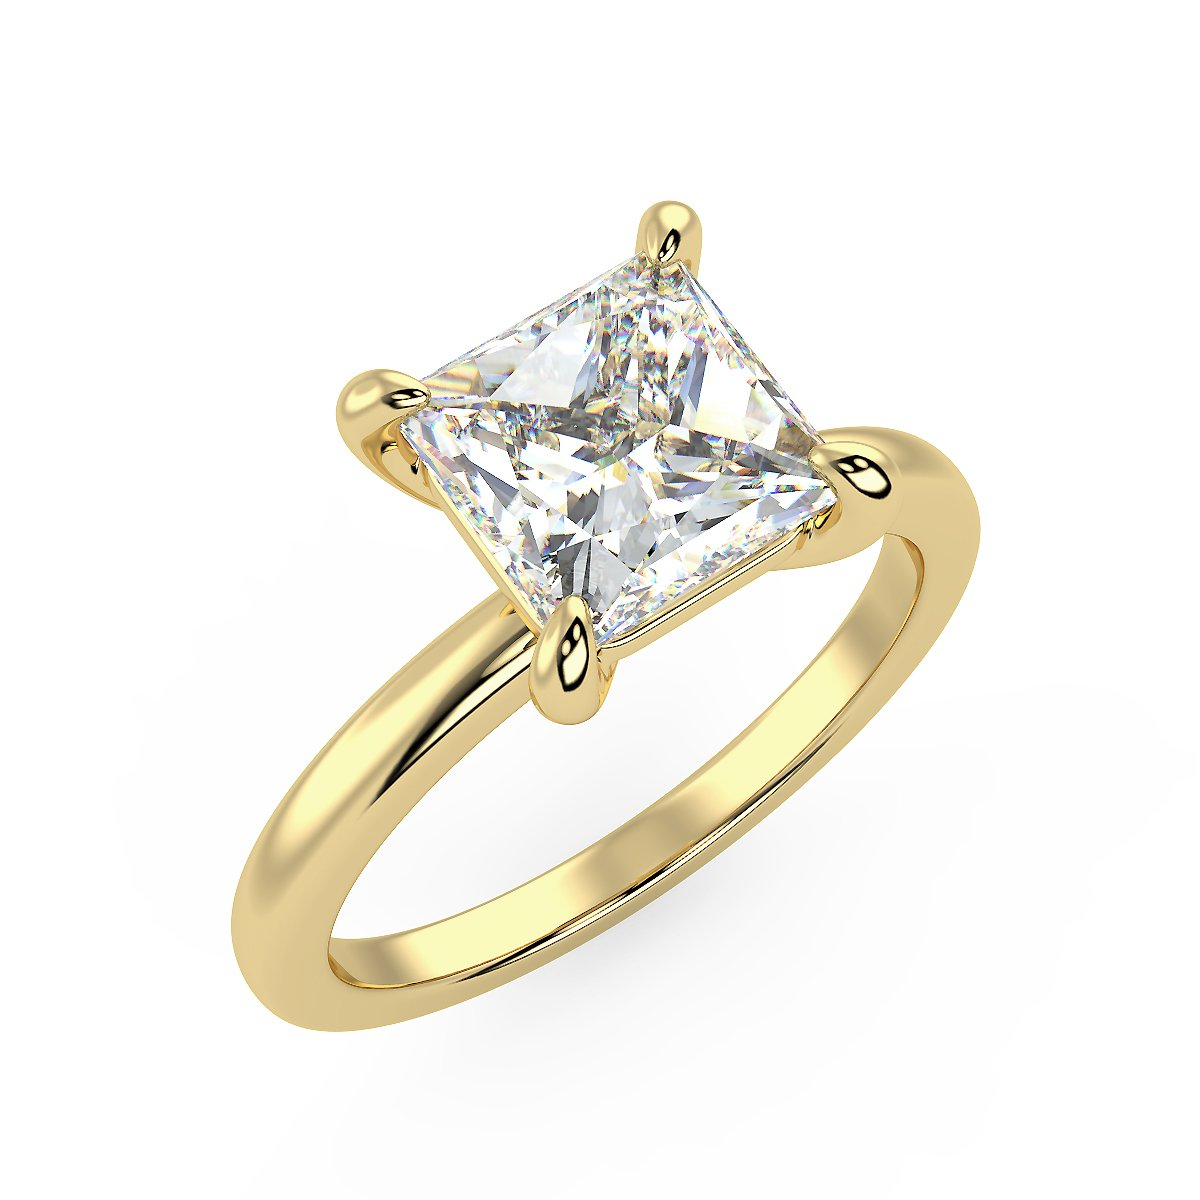 Sirius Princess Engagement Ring in Yellow Gold